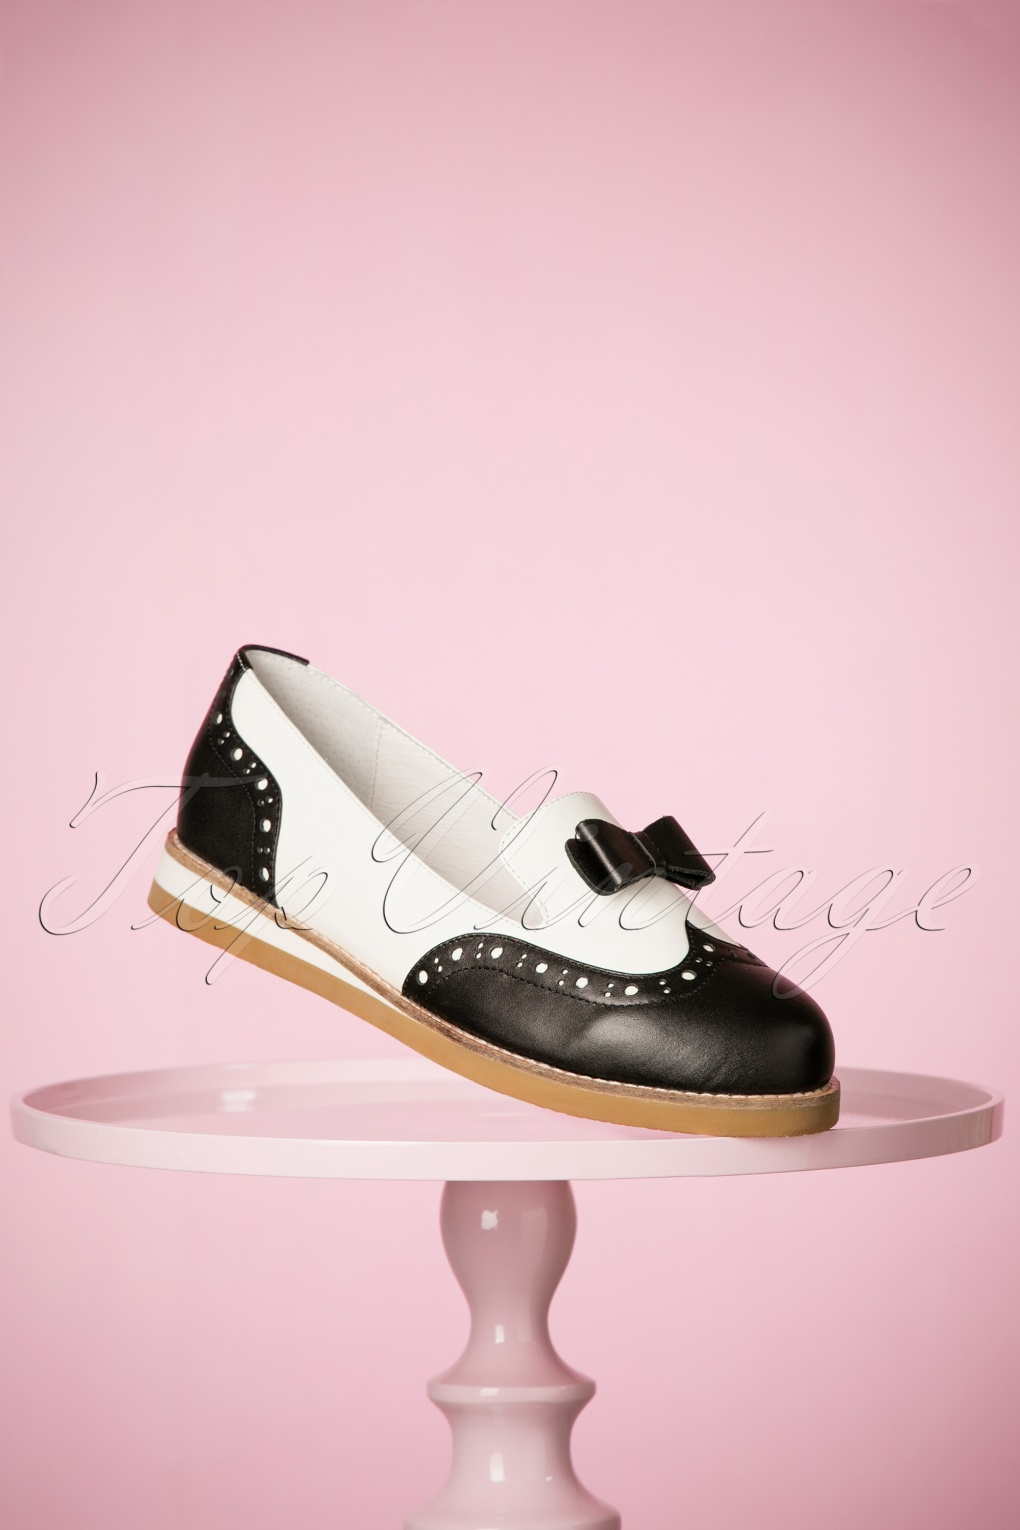 Retro Vintage Flats and Low Heel Shoes 50s Cecilia Loafer Love Shoes in Black and White £131.34 AT vintagedancer.com